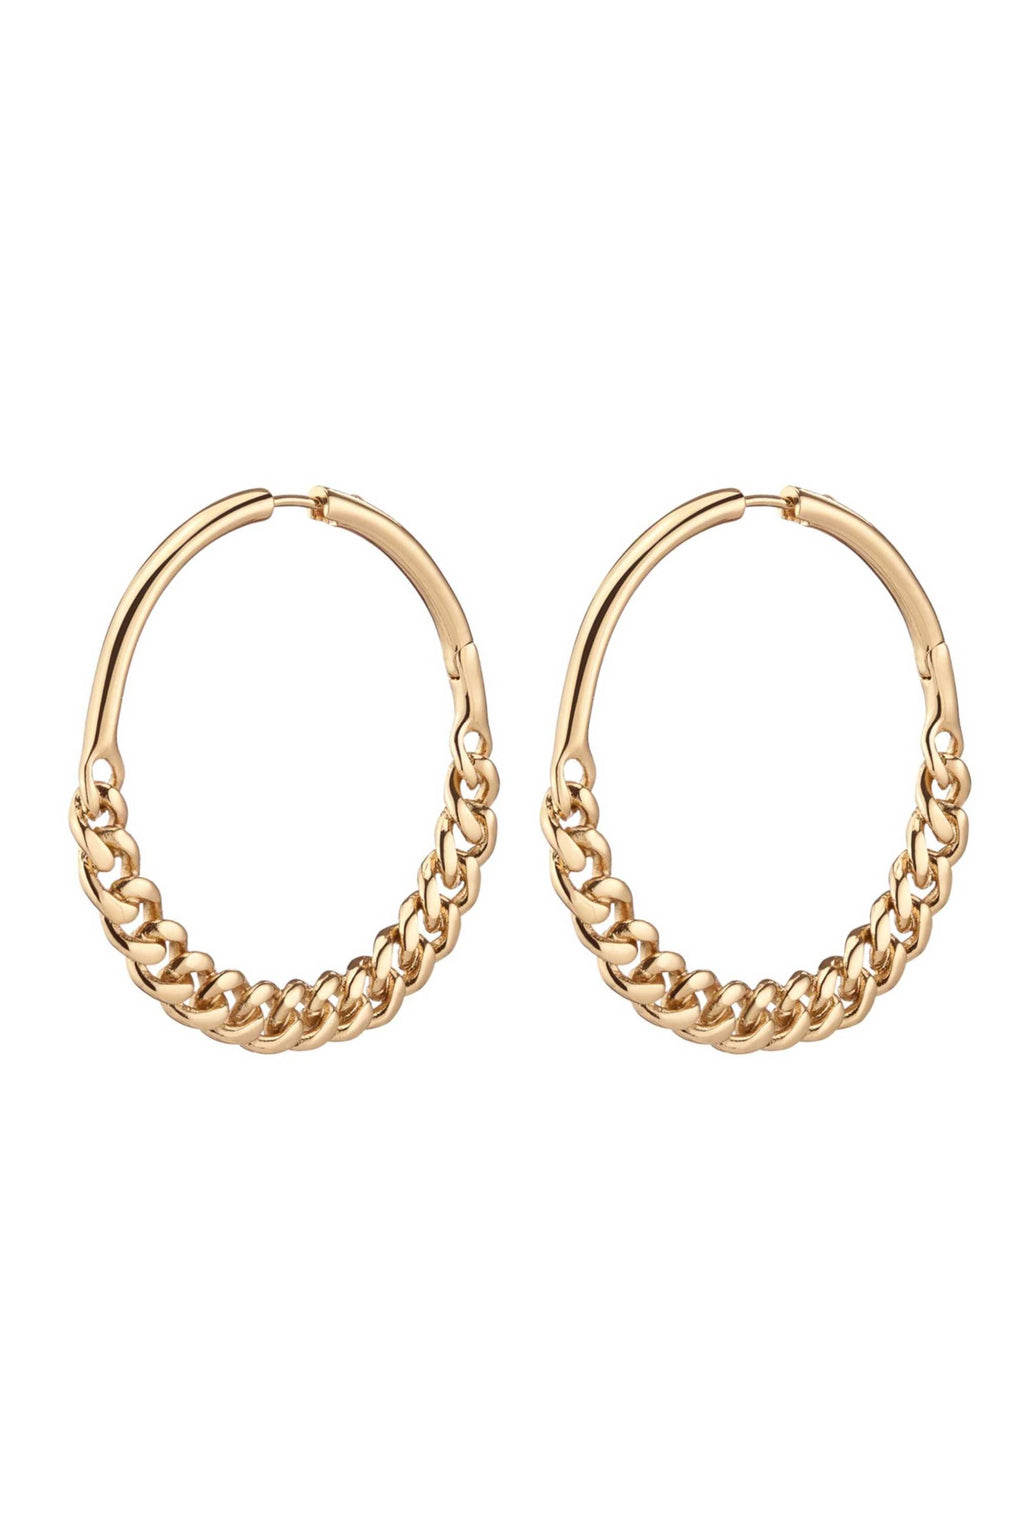 CRISTY HOOPS - GOLD